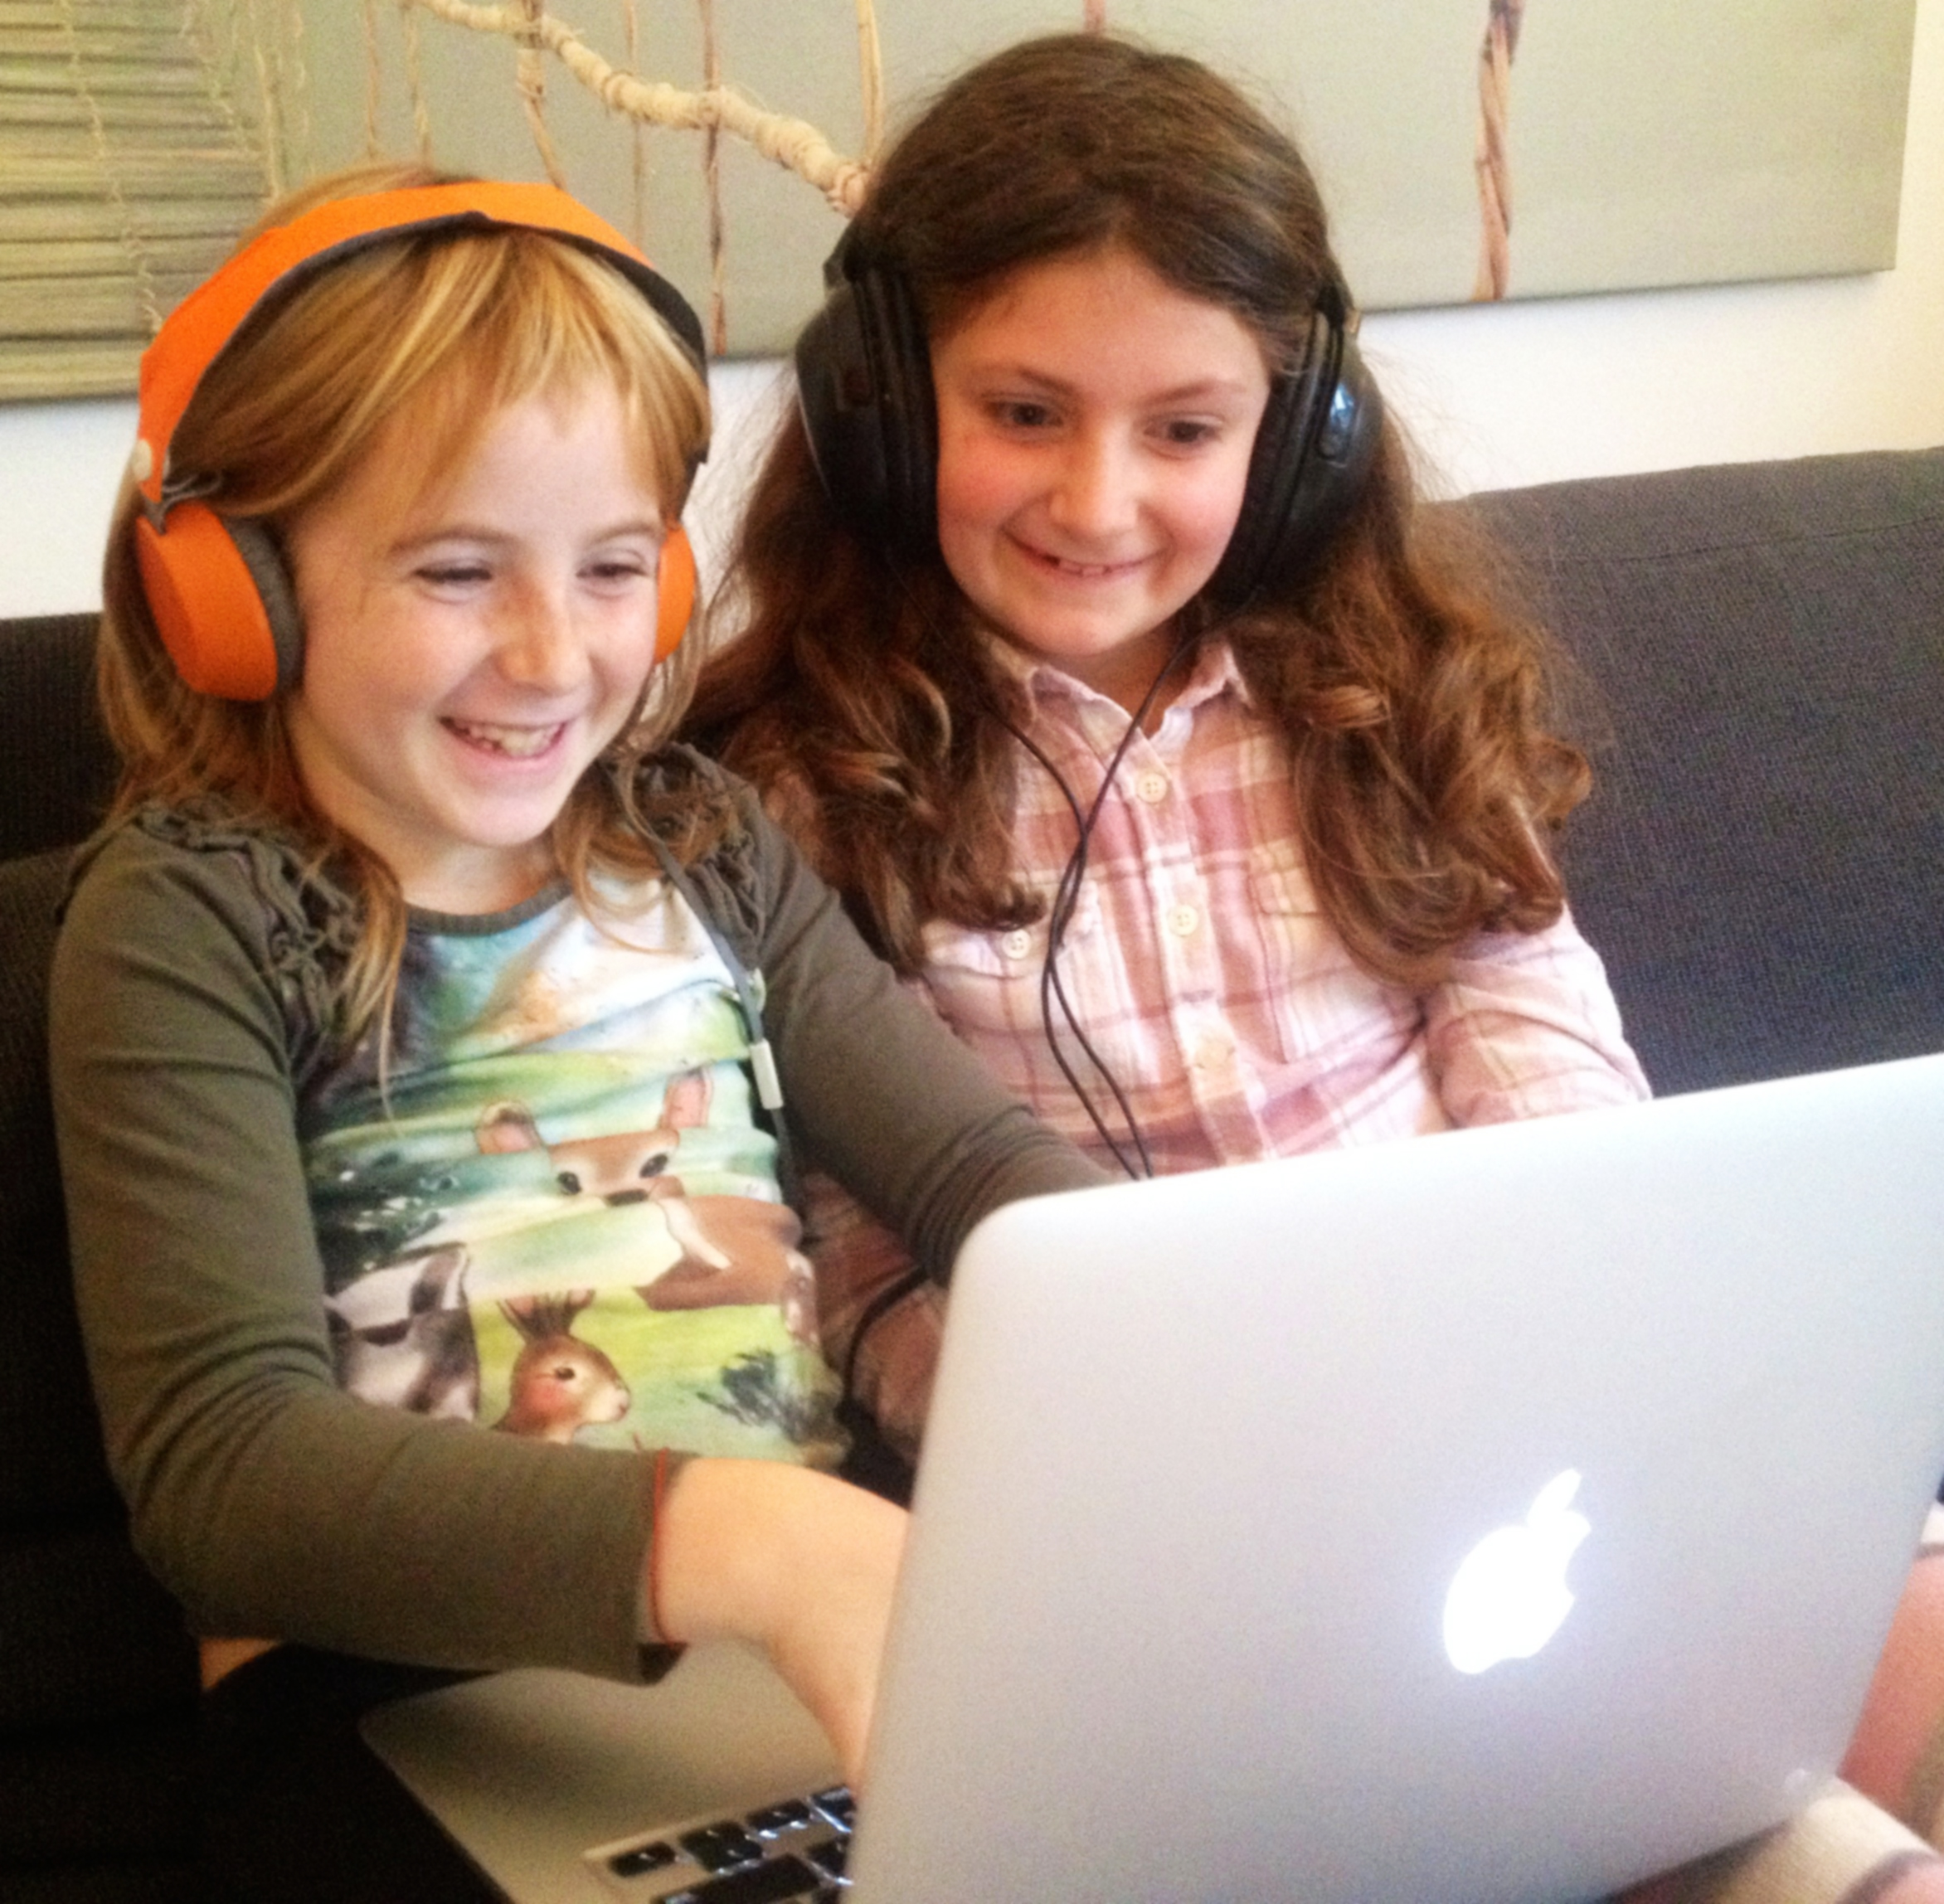 Two children playing a computer game together wearing headphones.